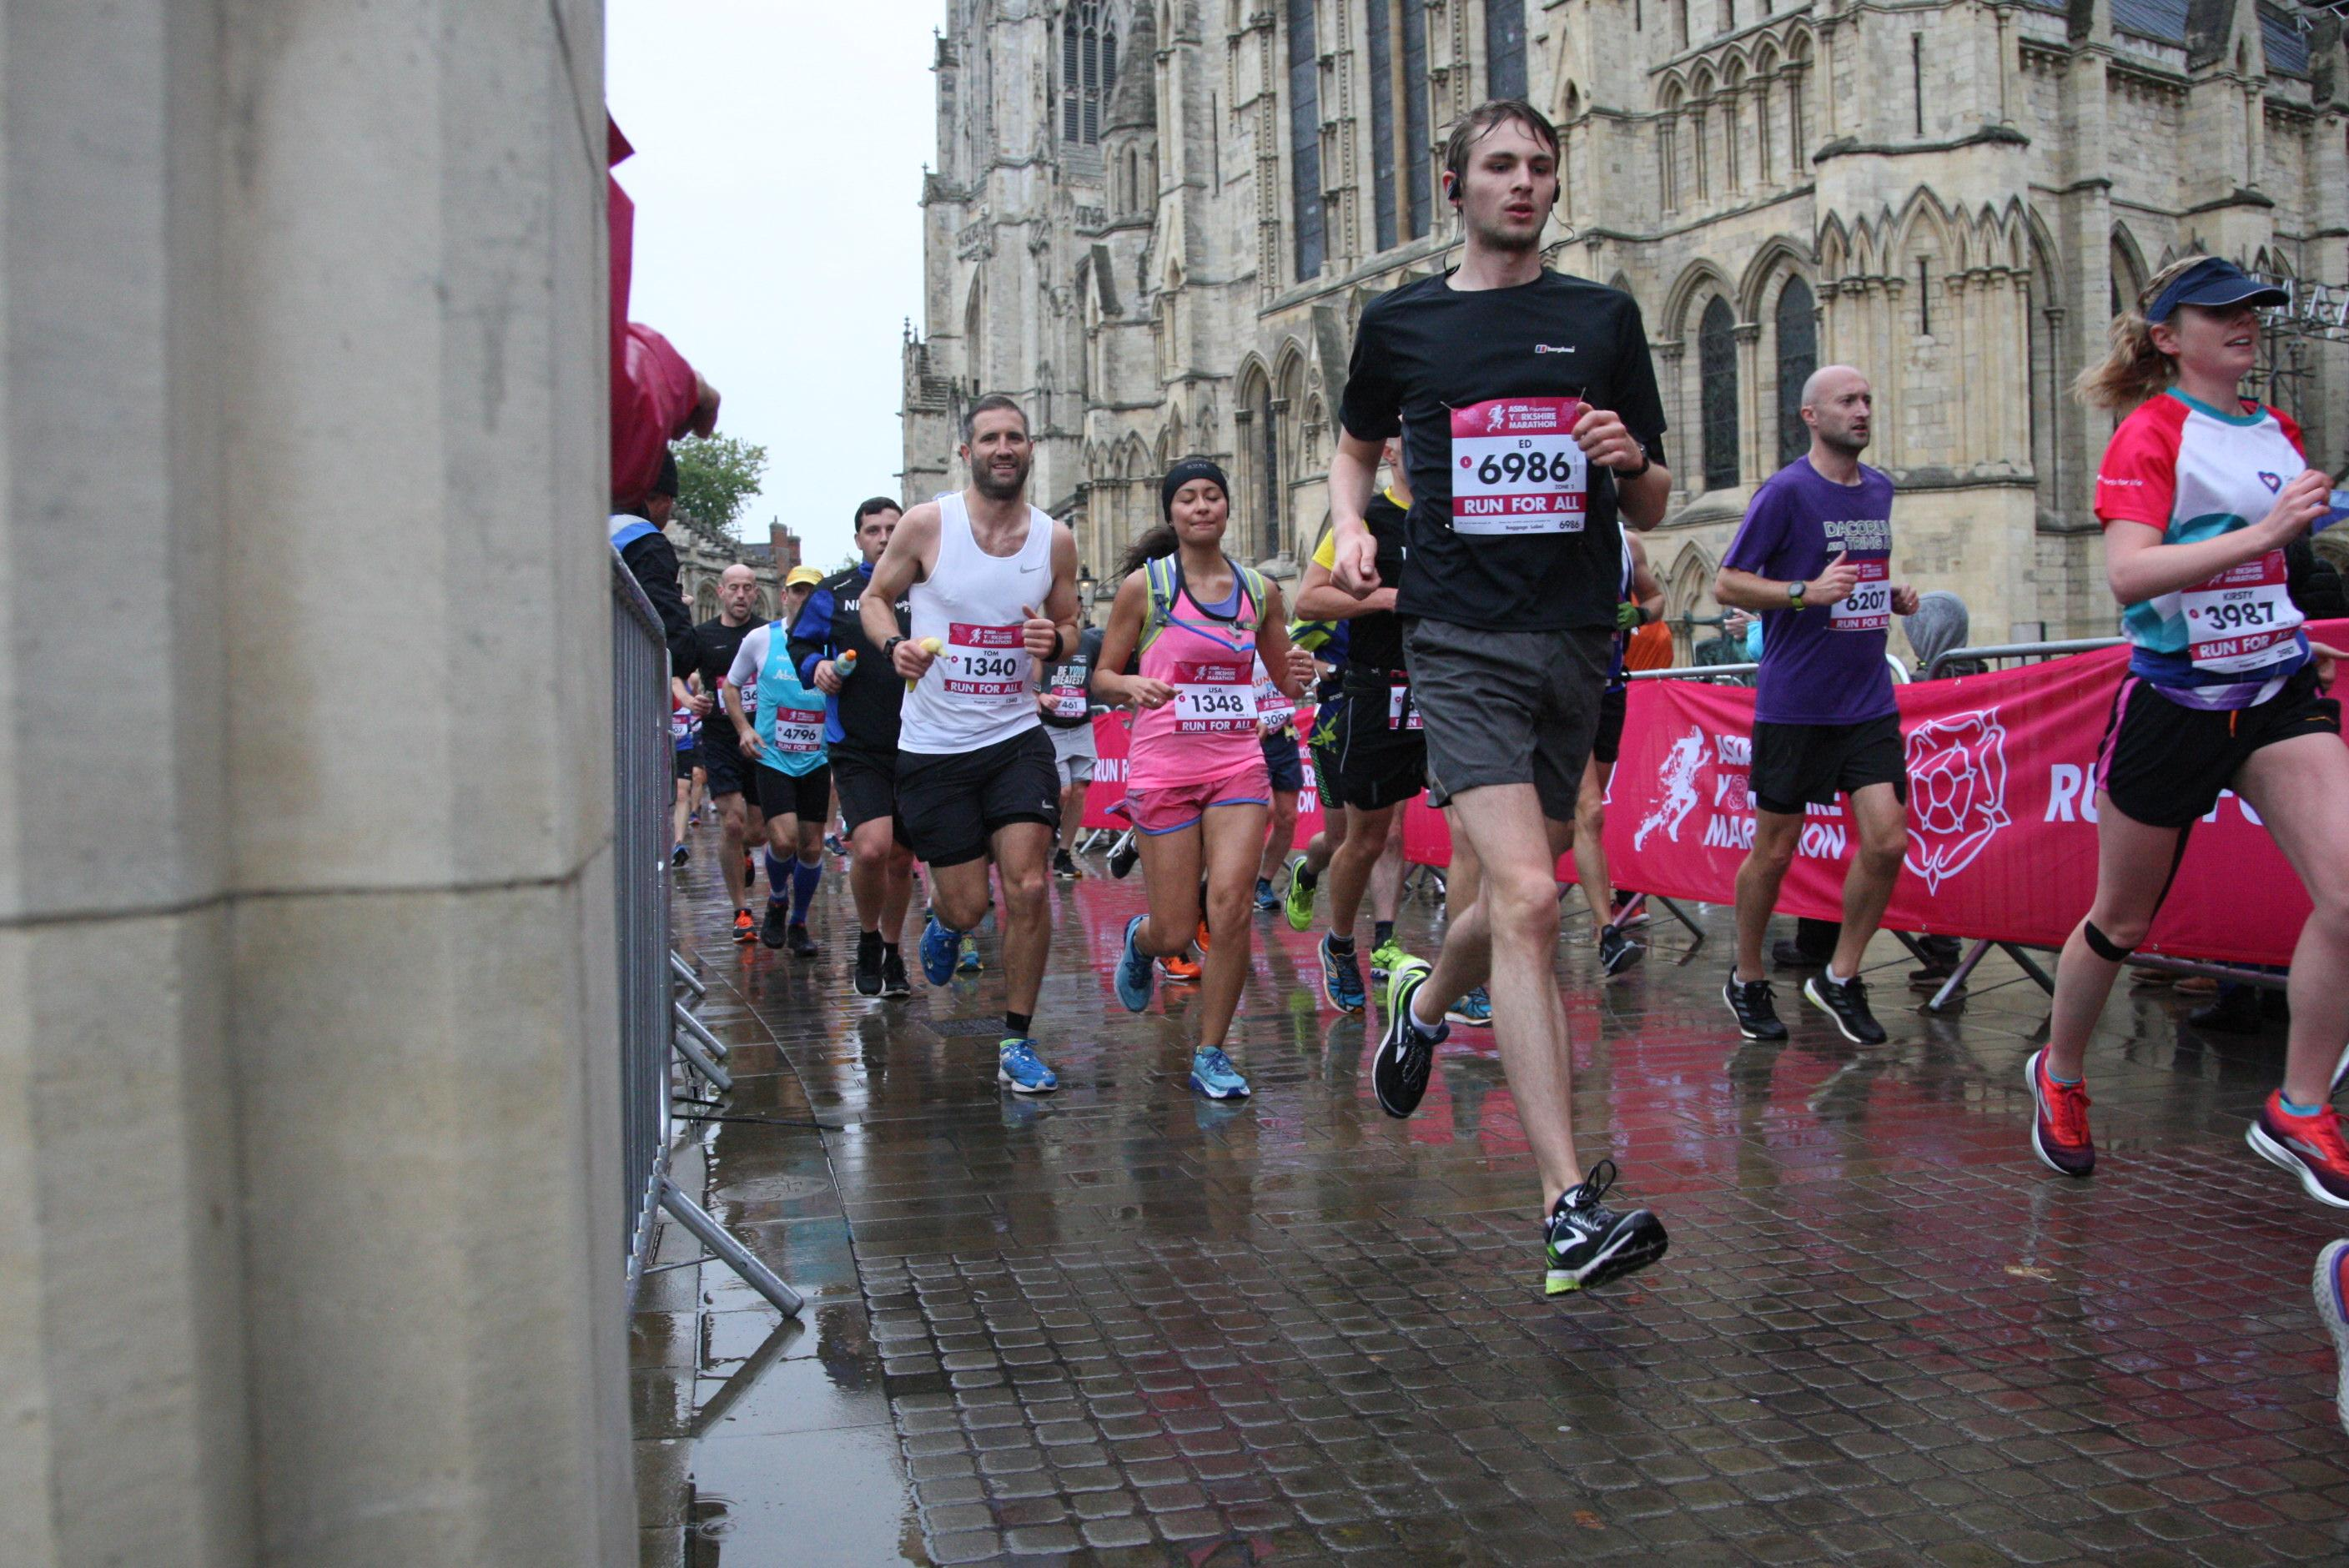 Run the Leeds 10k 2020 for Students or Mental Health at York